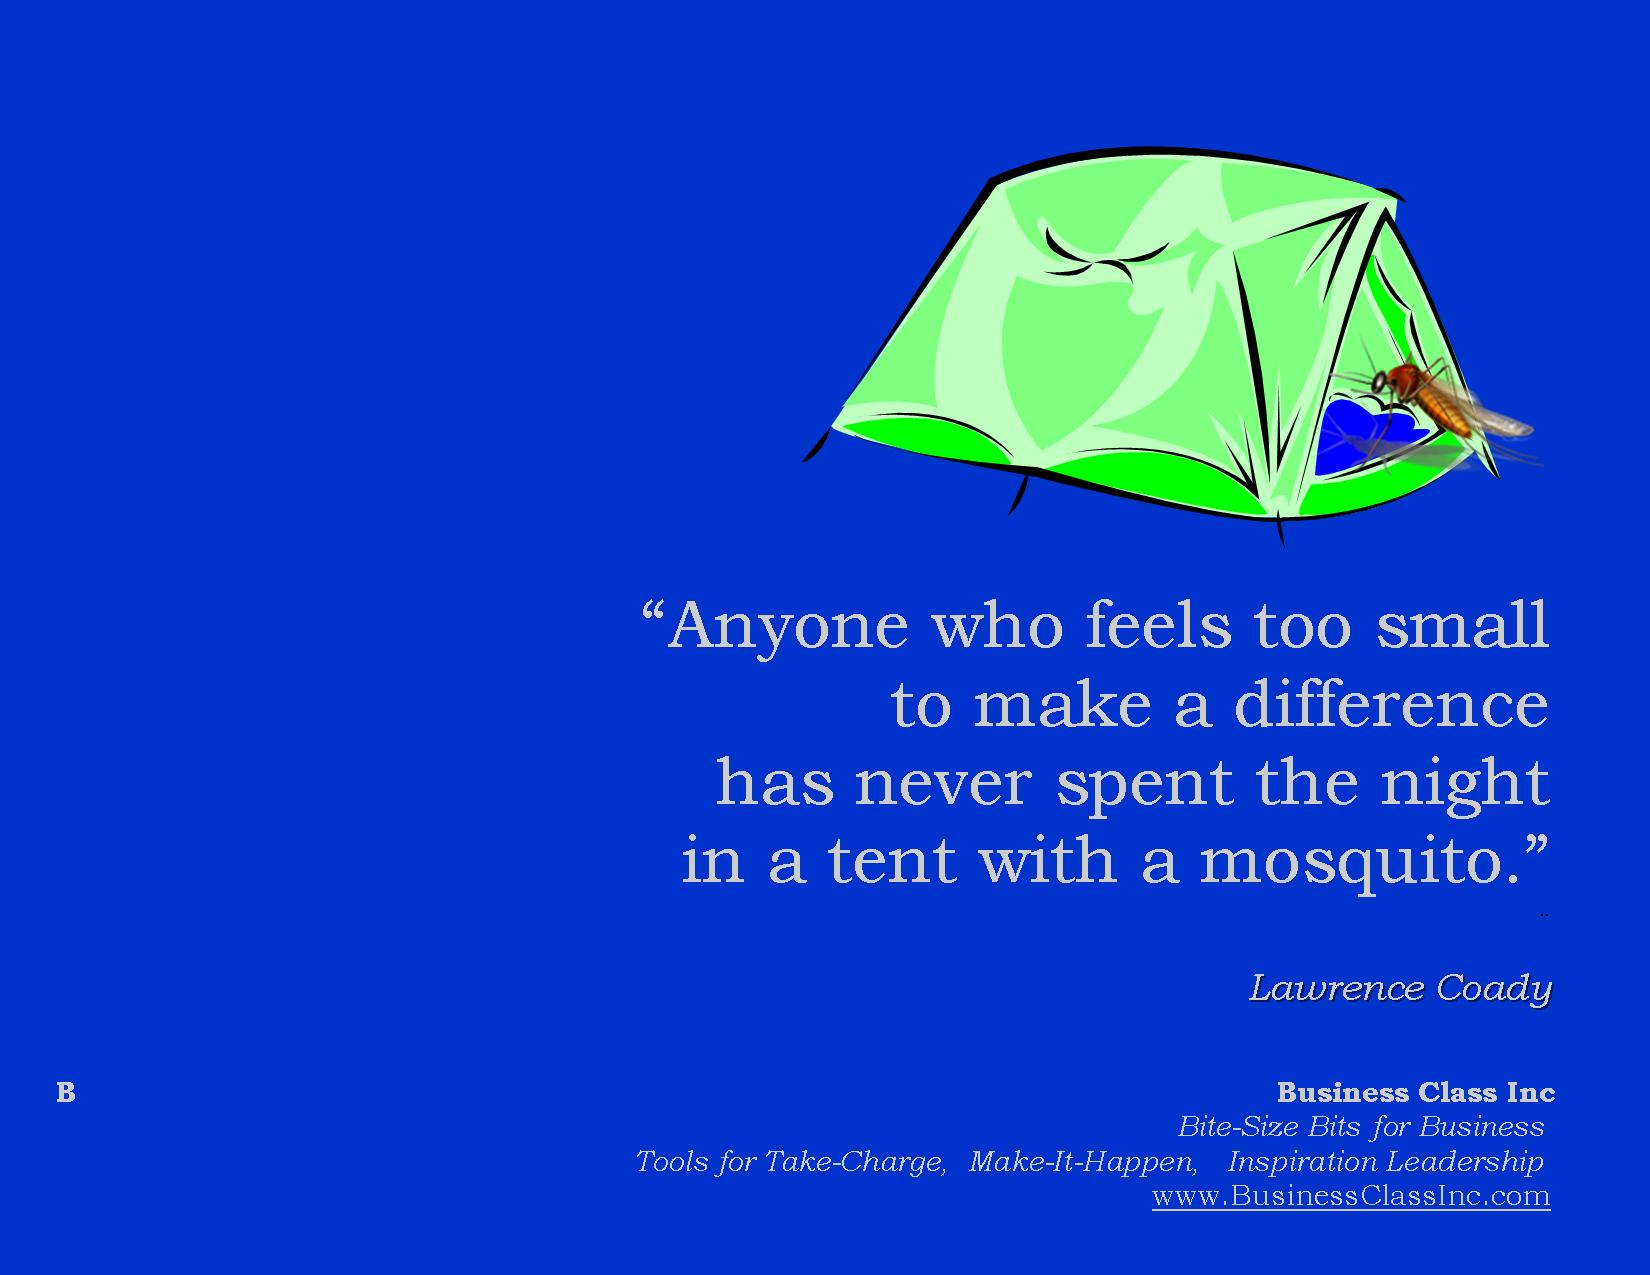 Anyone who feels too small to make a difference has never spend the night in a tent with a mosquito.